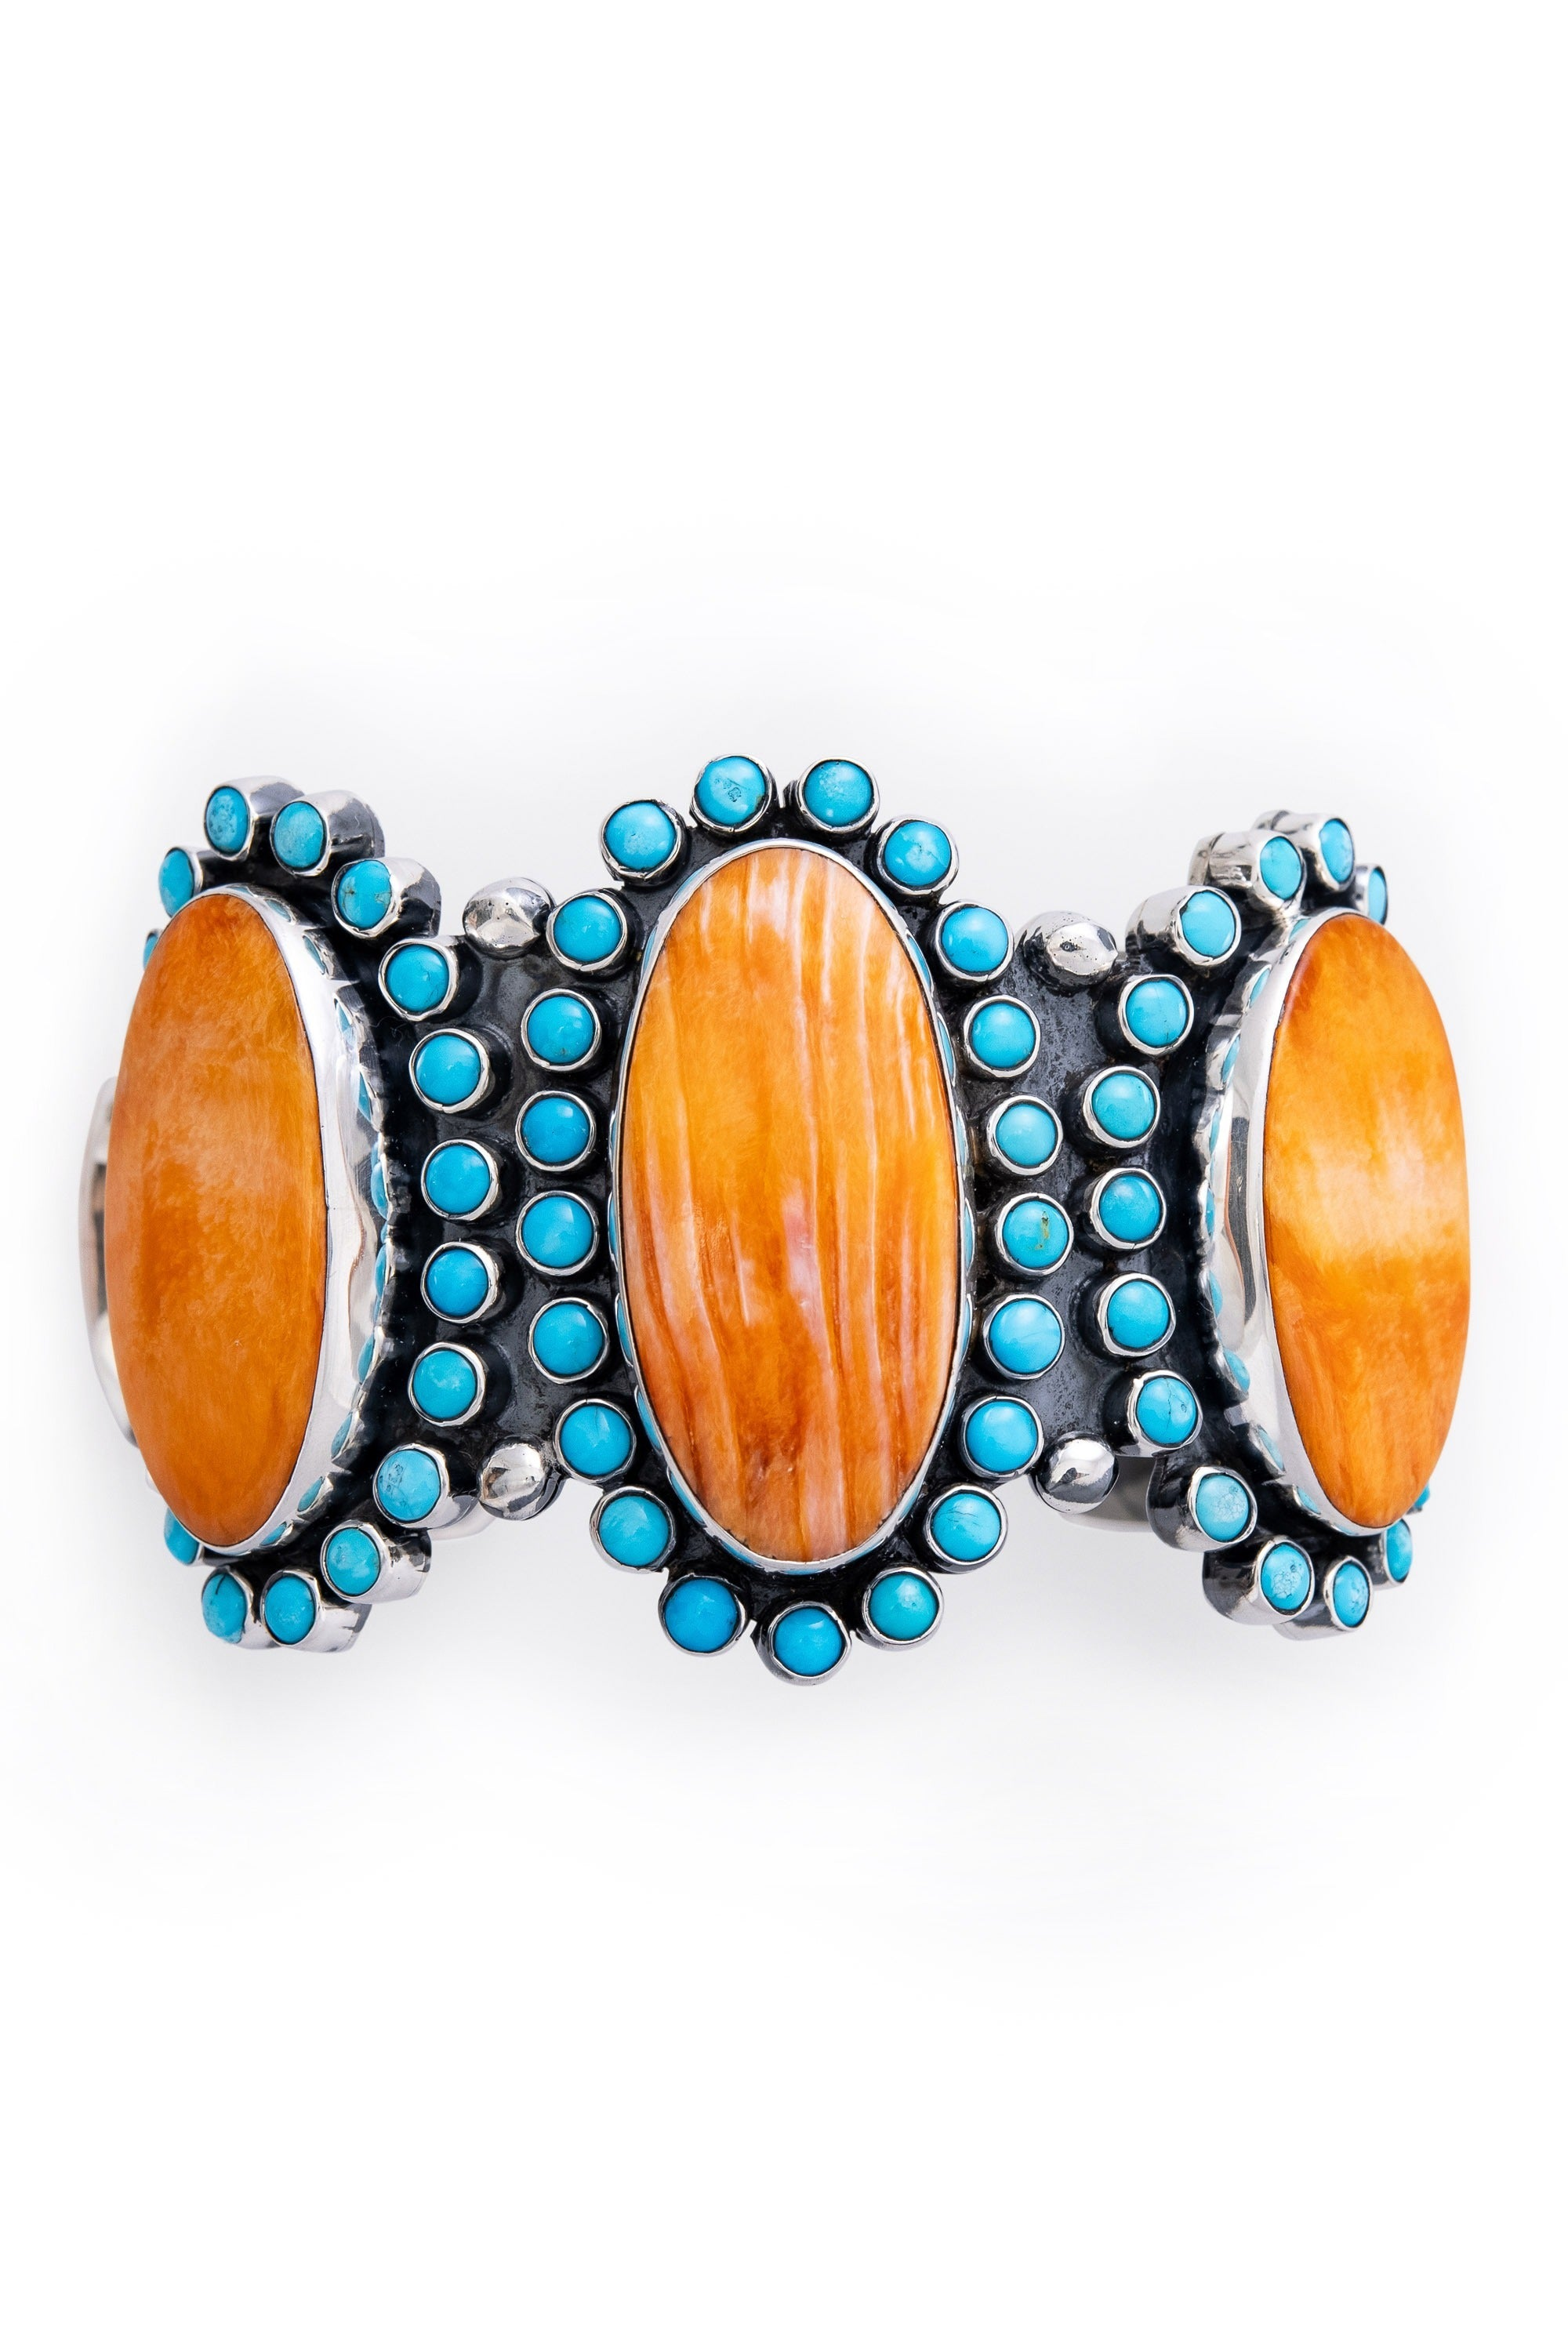 Cuff, Cluster, Cameo, Orange Spiny Oyster & Turquoise, Federico, Contemporary, 2787